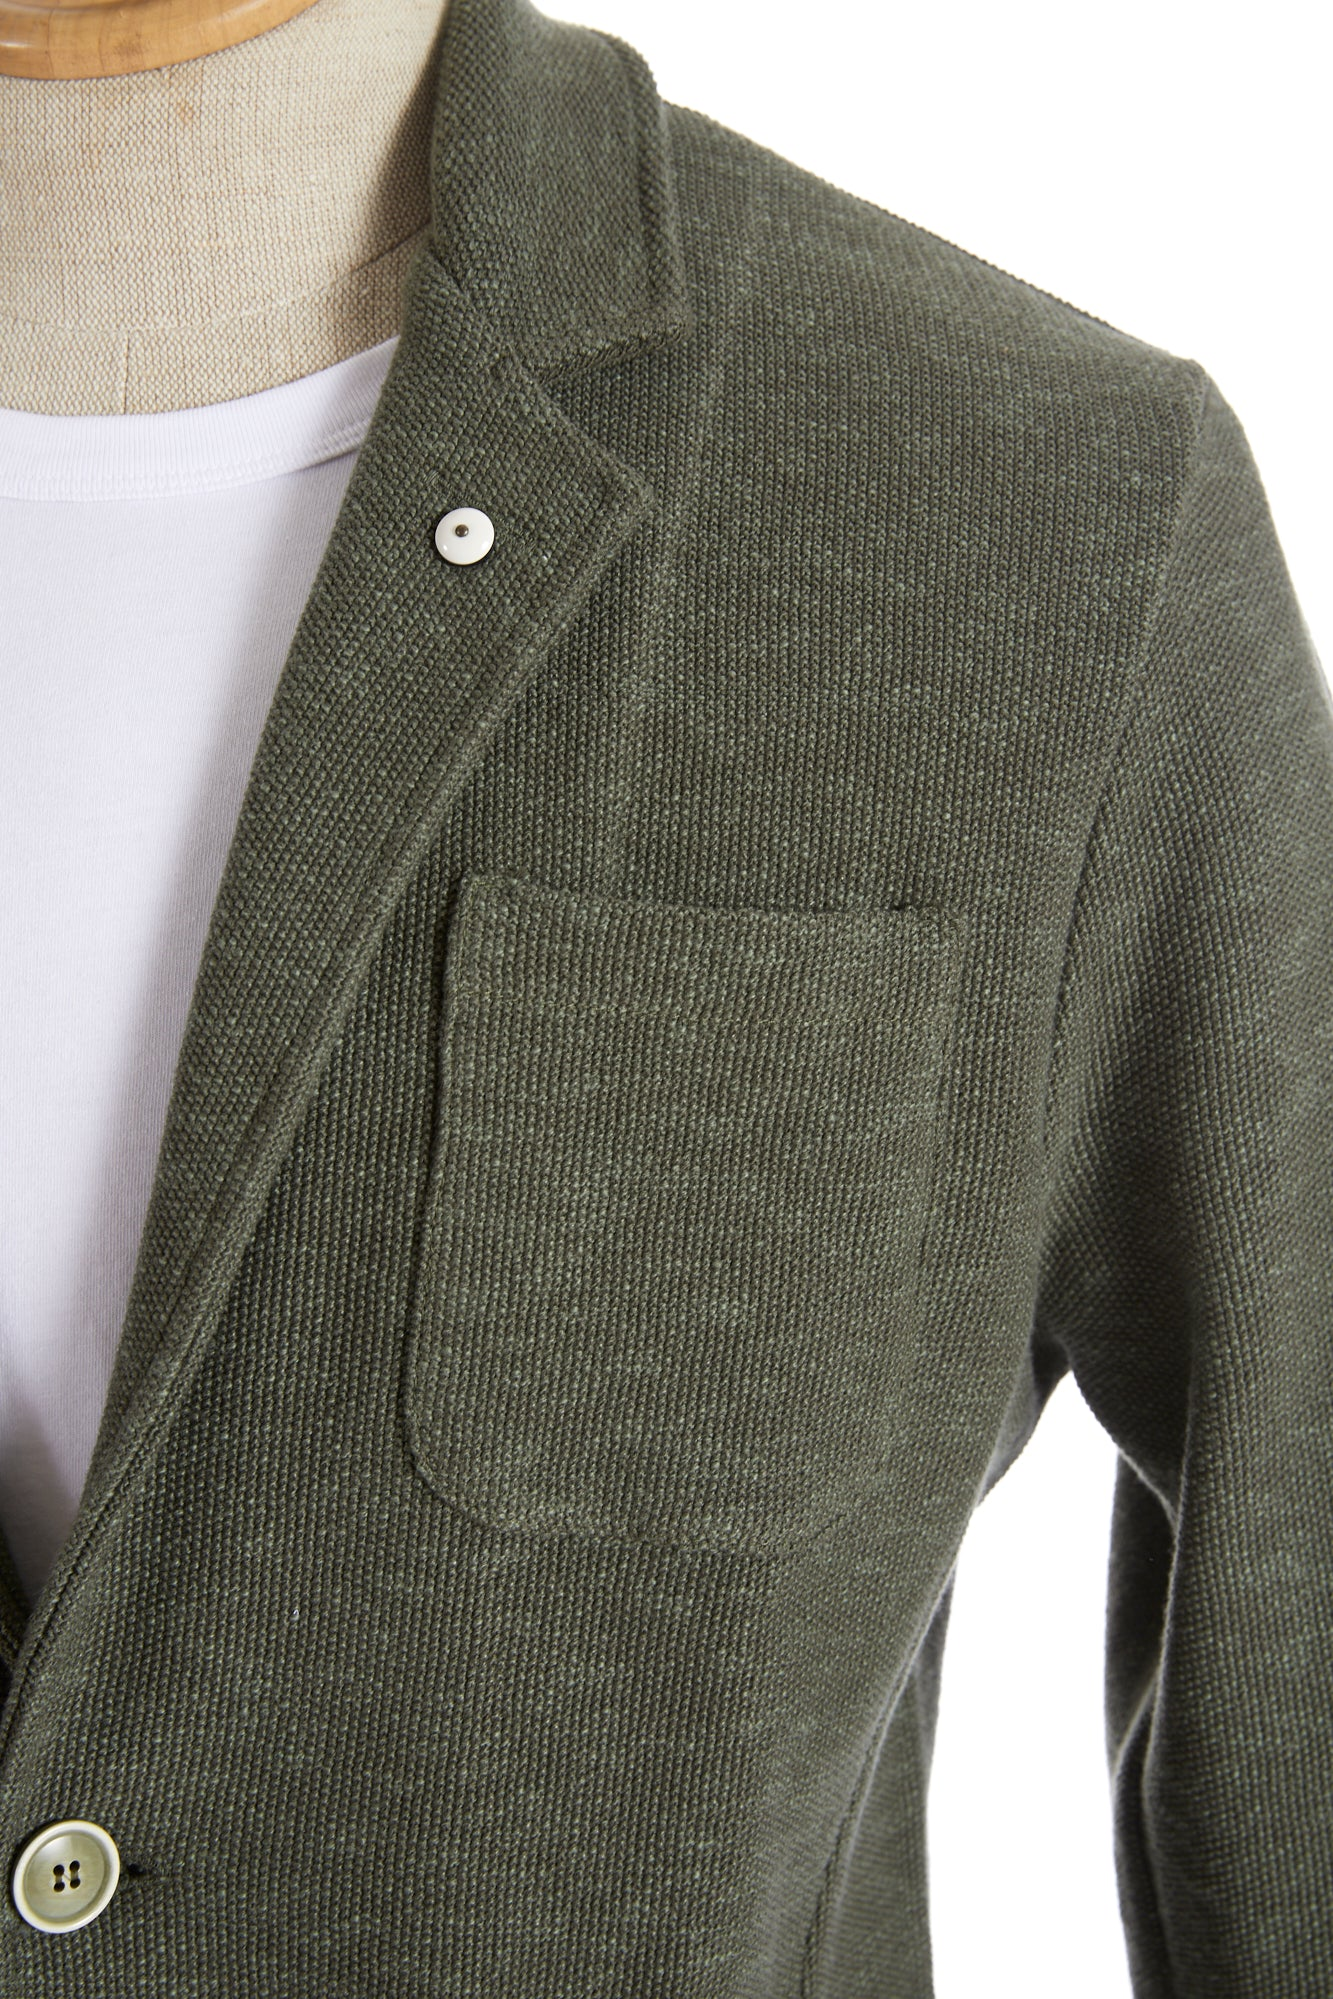 L.B.M. 1911 Moss Green Cotton Sweater Jacket - Sport Jackets - L.B.M. 1911 - LALONDE's